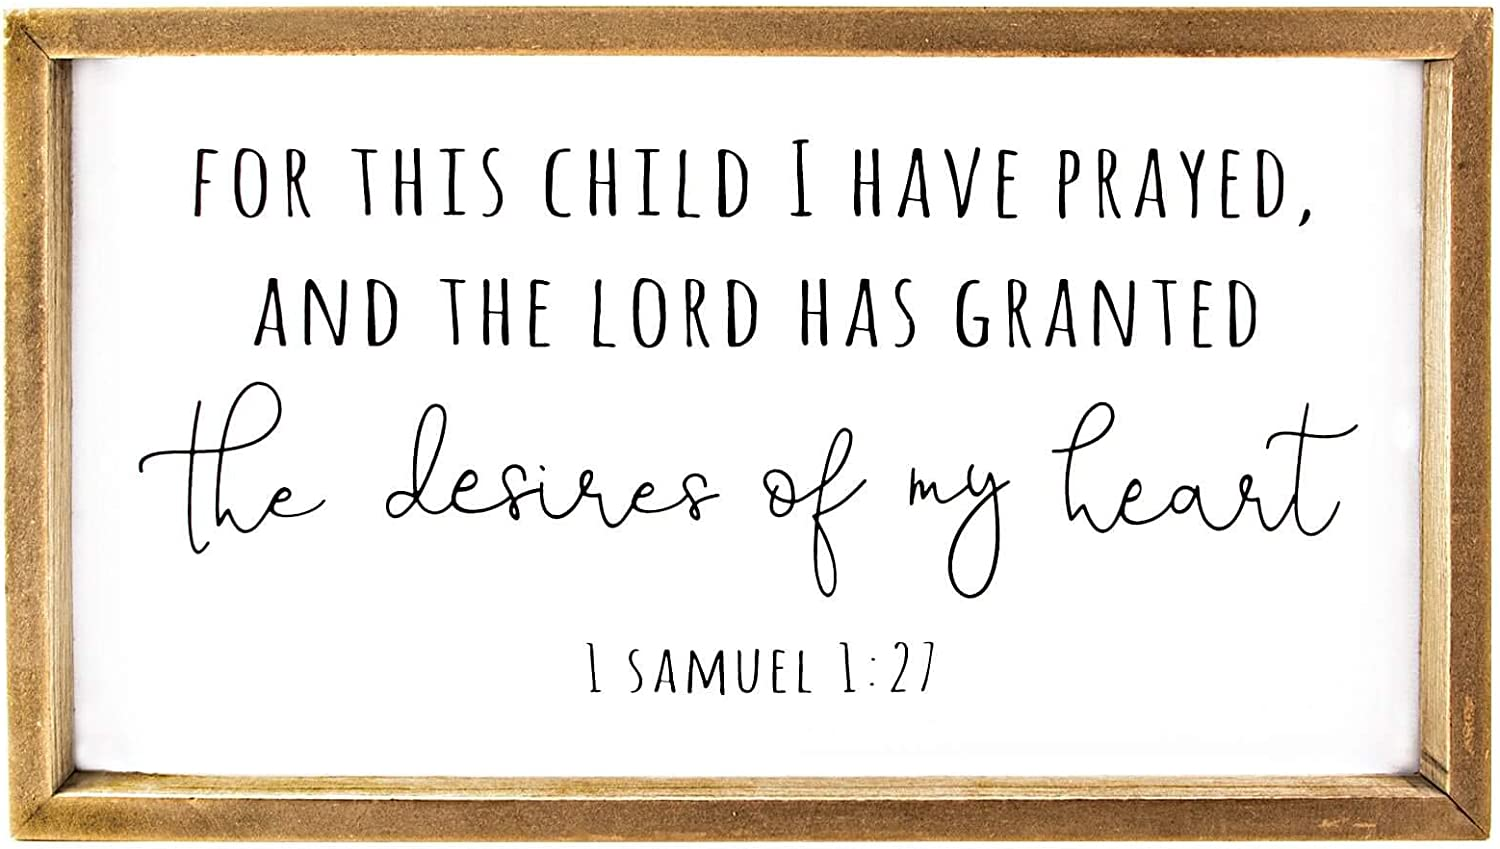 VILIGHT Wood Nursery Wall Decor for Girl and Boy - New Mom Gifts Framed Rustic Signs for Kids - for This Child, I Have Prayed - 16x8.6 Inches